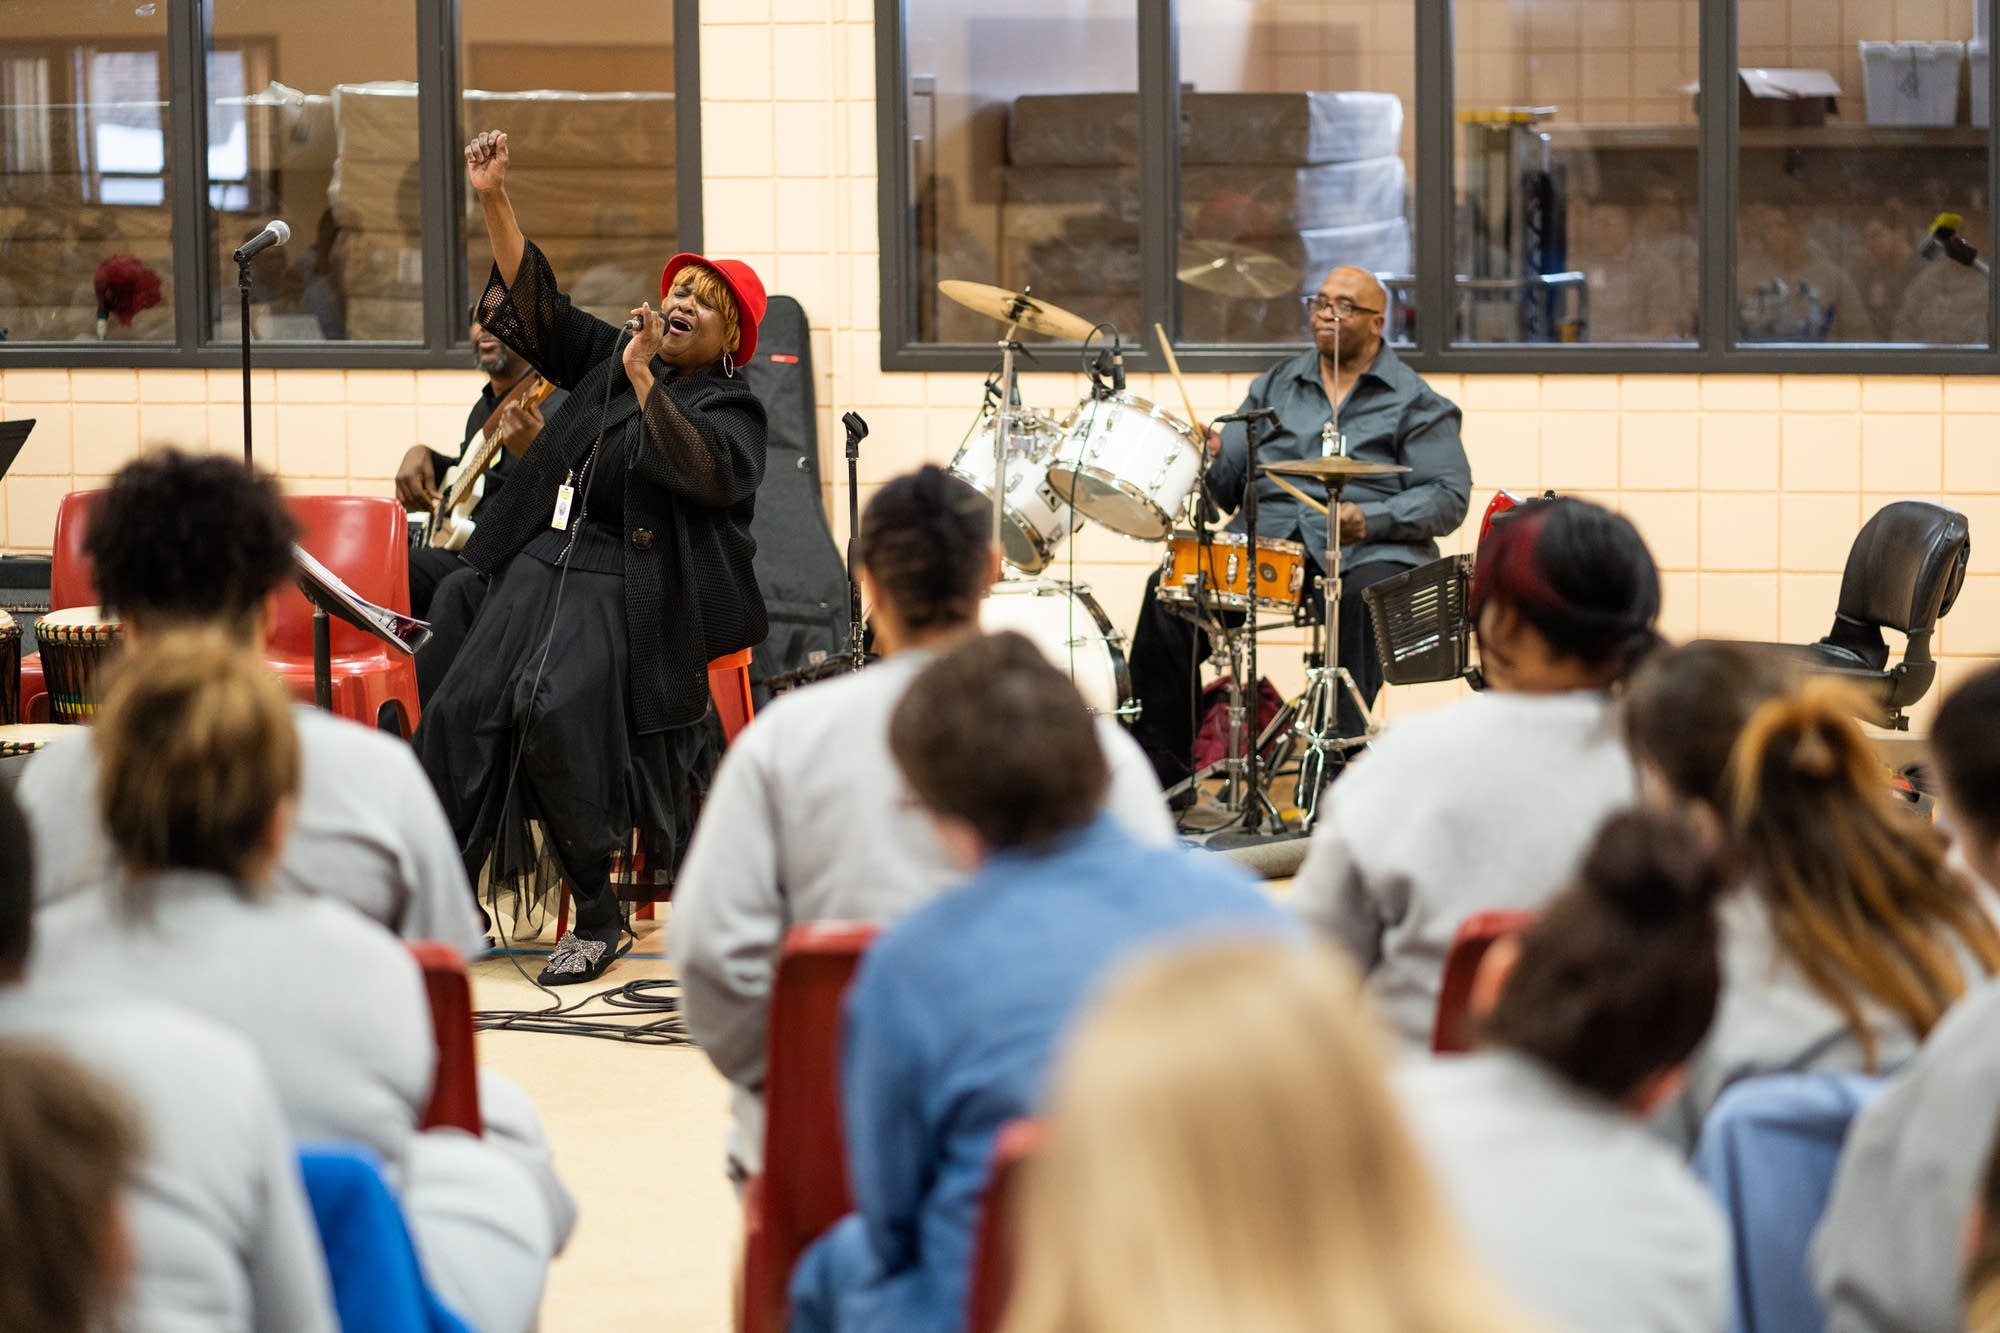 Minneapolis based singer Gwen Matthews performs for inmates.